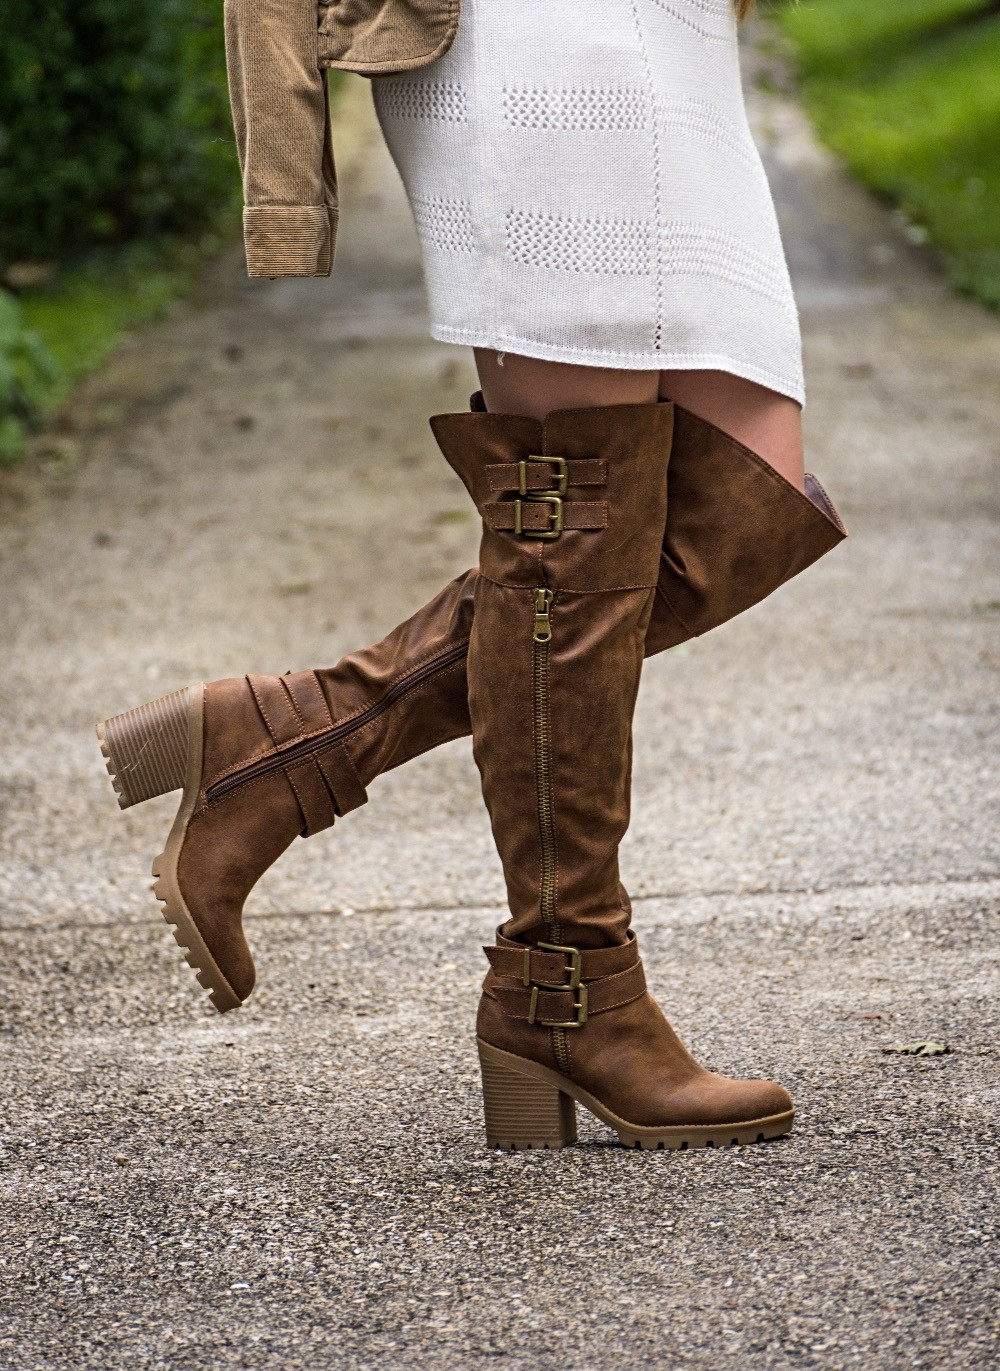 boots, fall, fall outfit, autumn, theheilstyle, April M. Heil, White Mountain, shoes, White Mountain Shoes, white dress, blazer, dressy, pretty, blonde, happy, photography